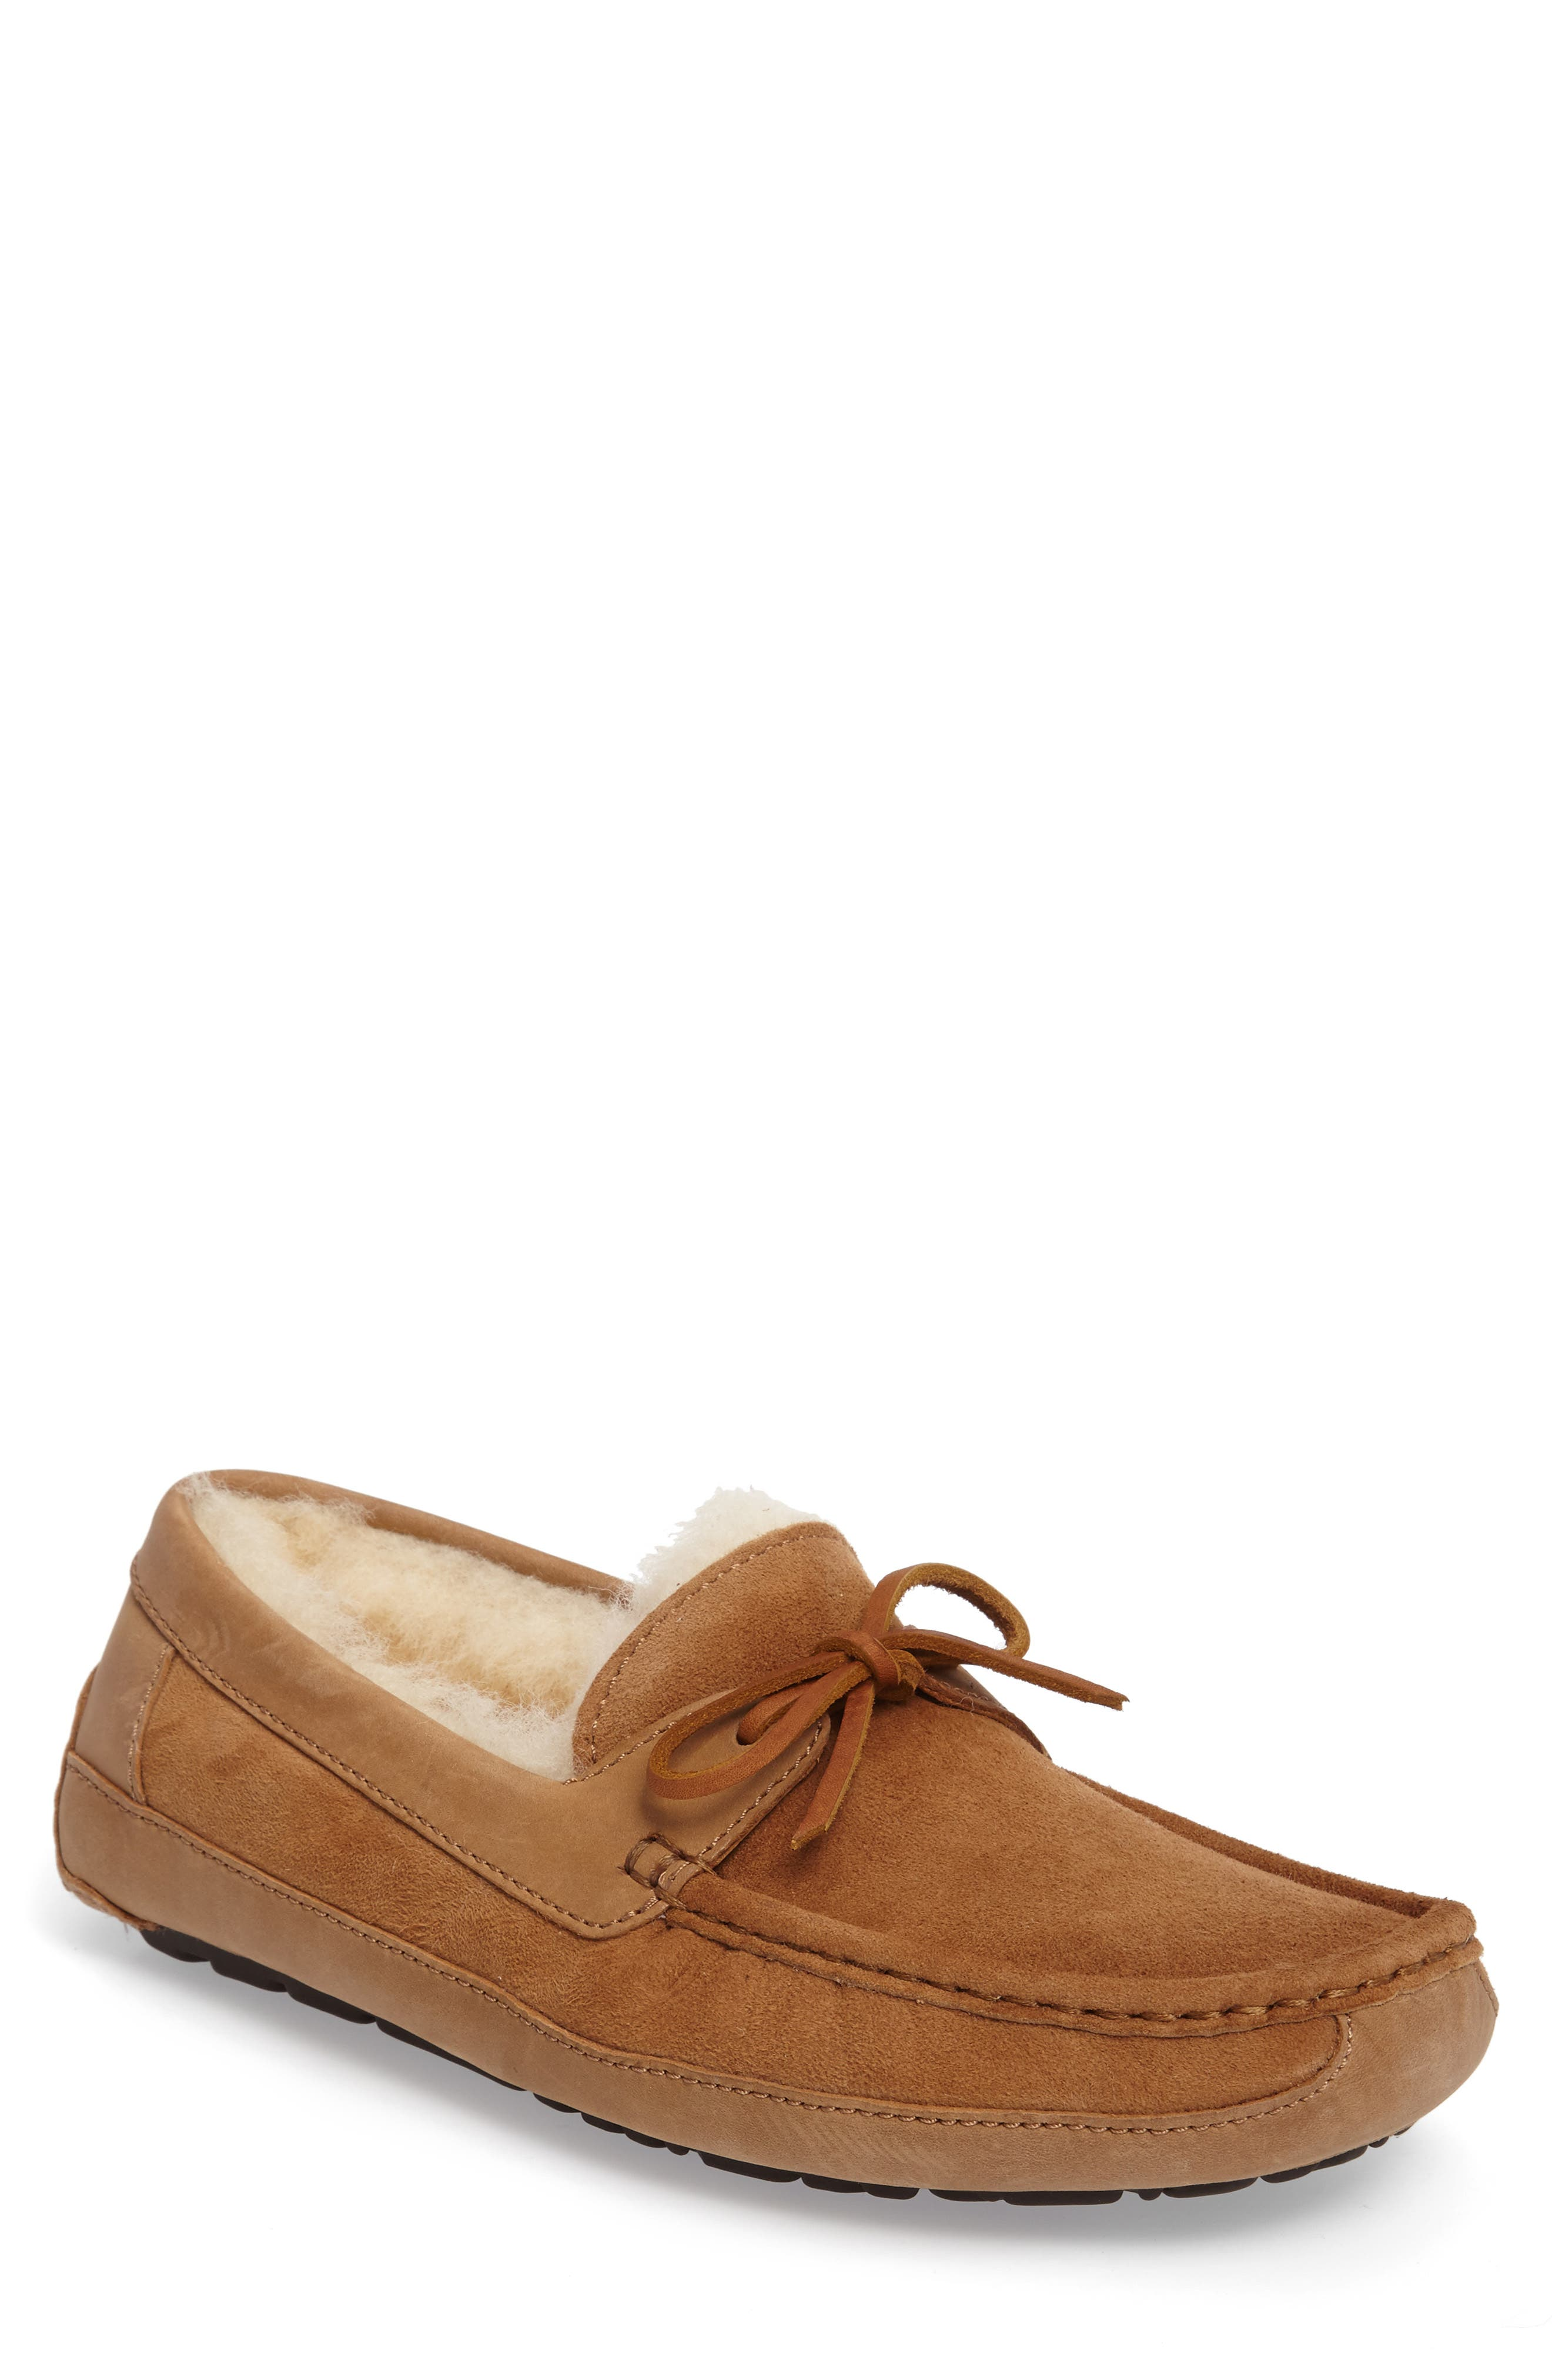 37ab30b7e8e85 UGG - Men's Casual Fashion Shoes and Sneakers